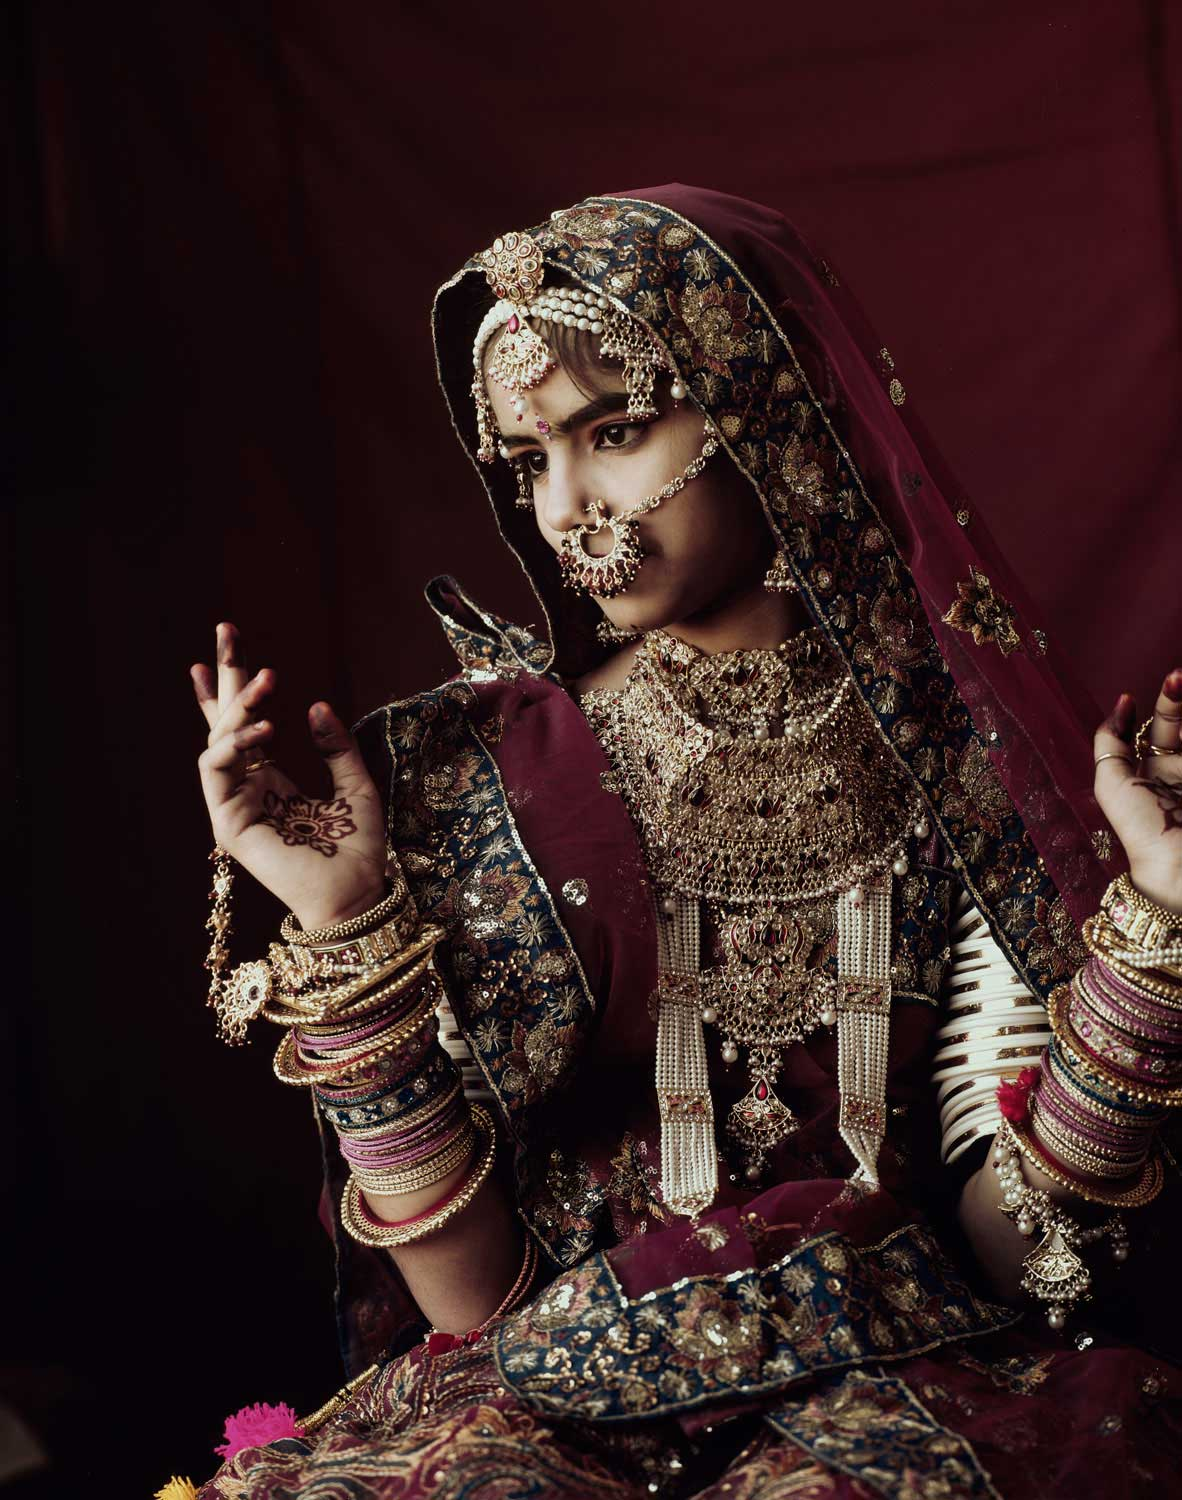 Rabari Tribe, Rajastan, India. Photo by Jimmy Nelson | Yellowtrace